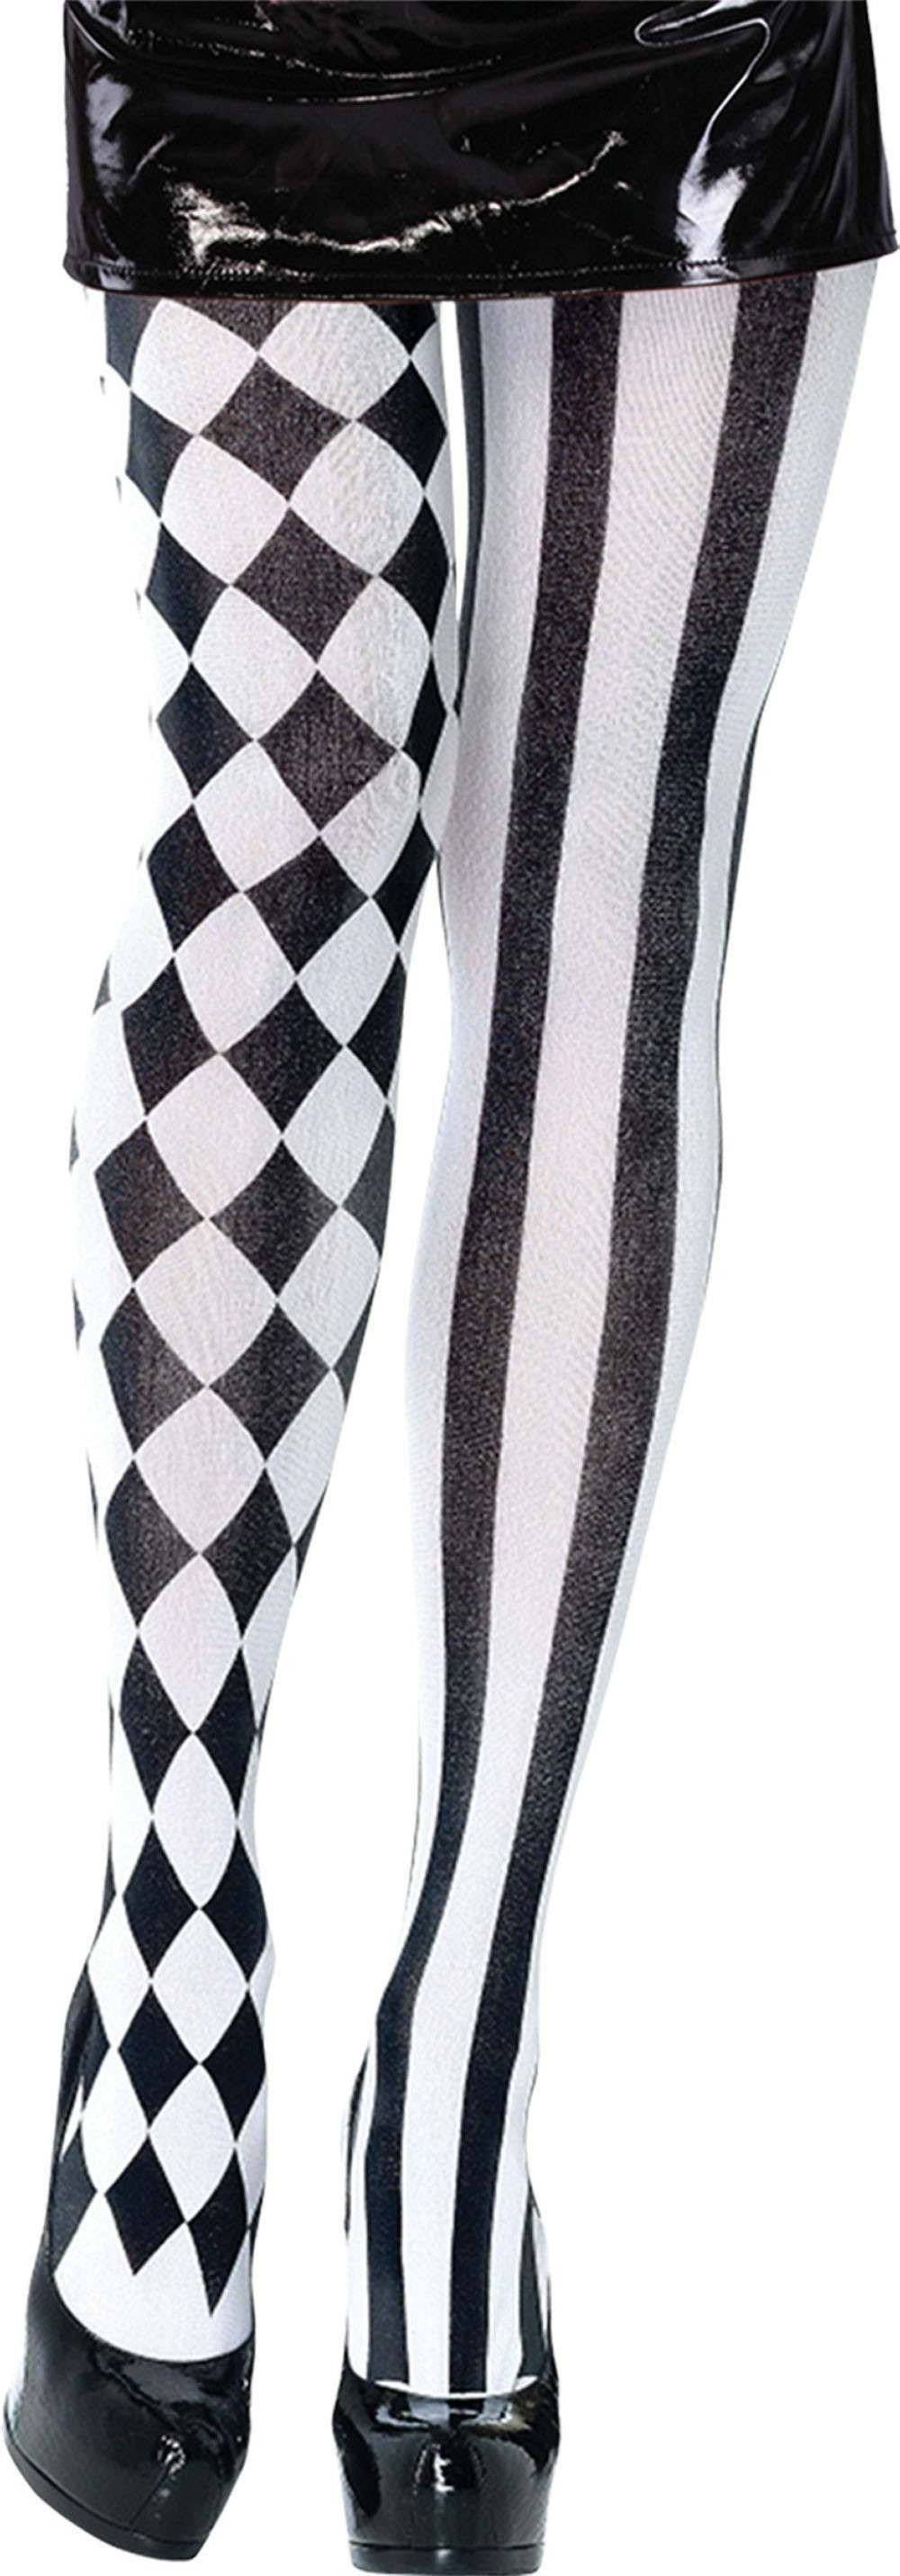 Harlequin Tights Black/White- Fancy Dress Halloween